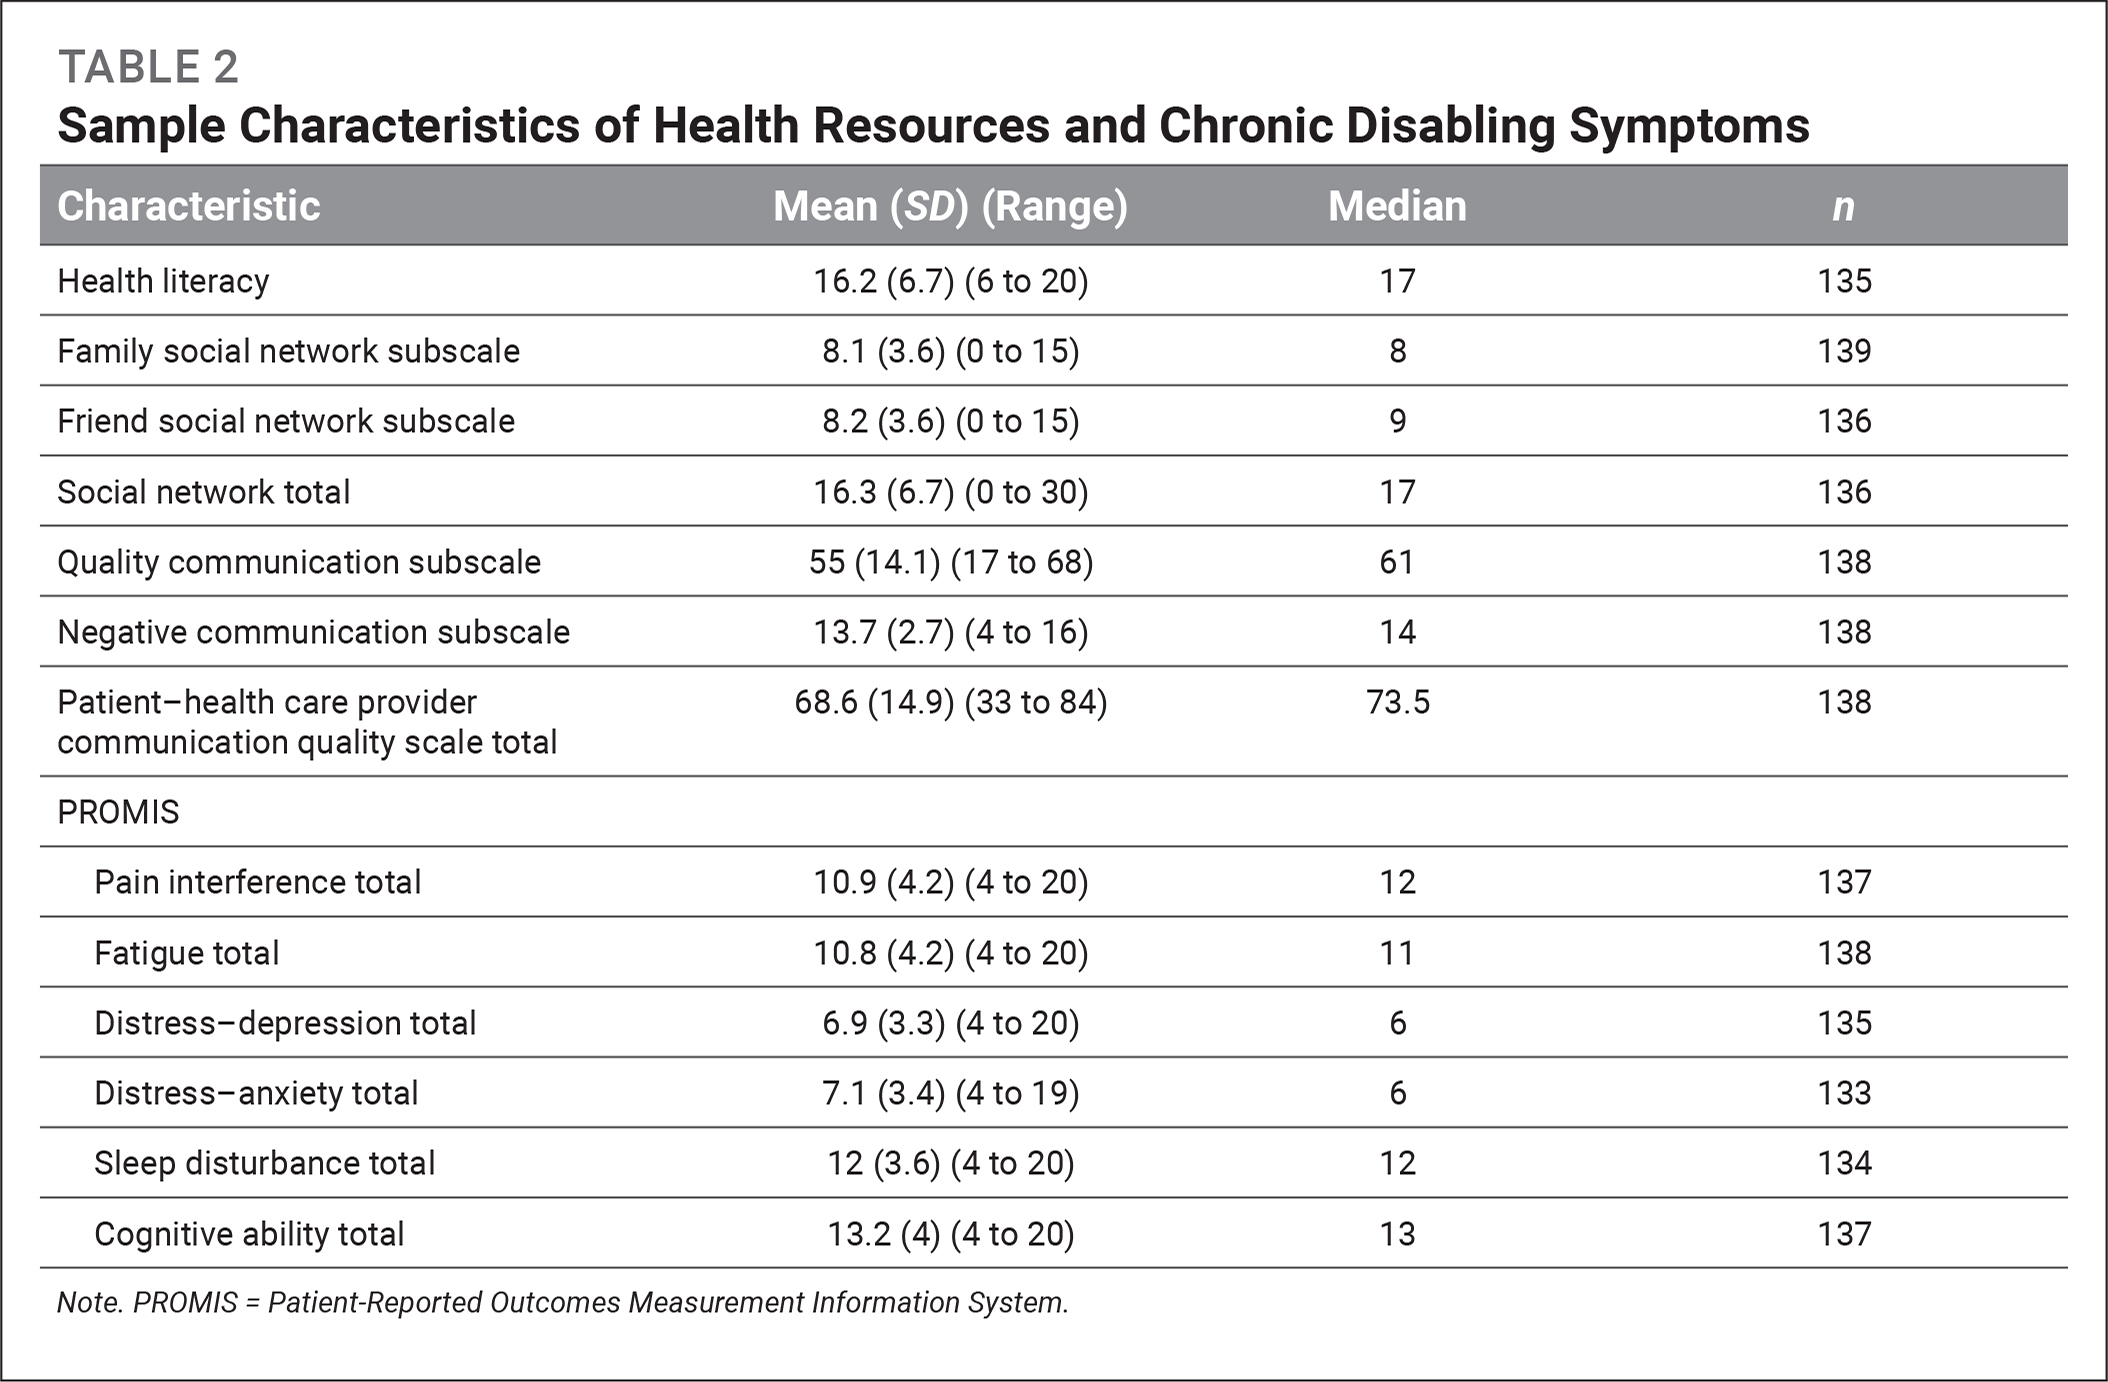 Sample Characteristics of Health Resources and Chronic Disabling Symptoms